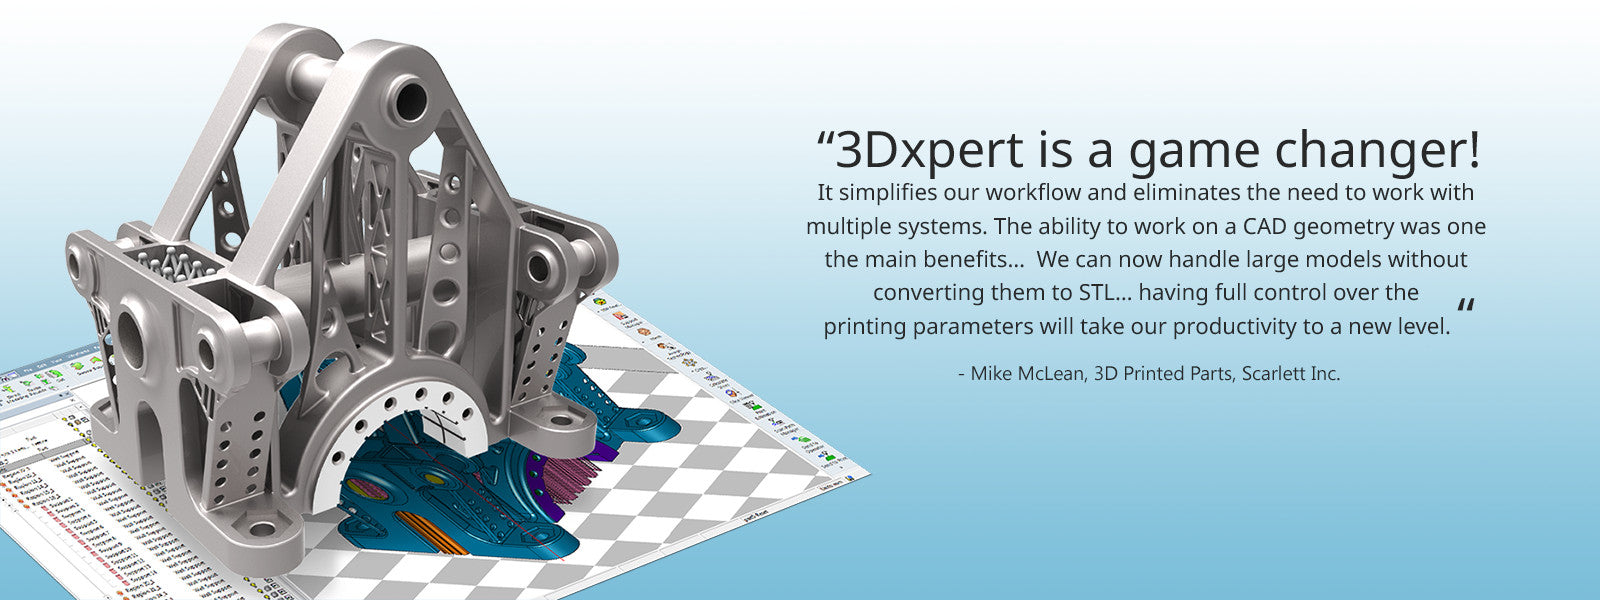 3D Systems Mike McLean Quote